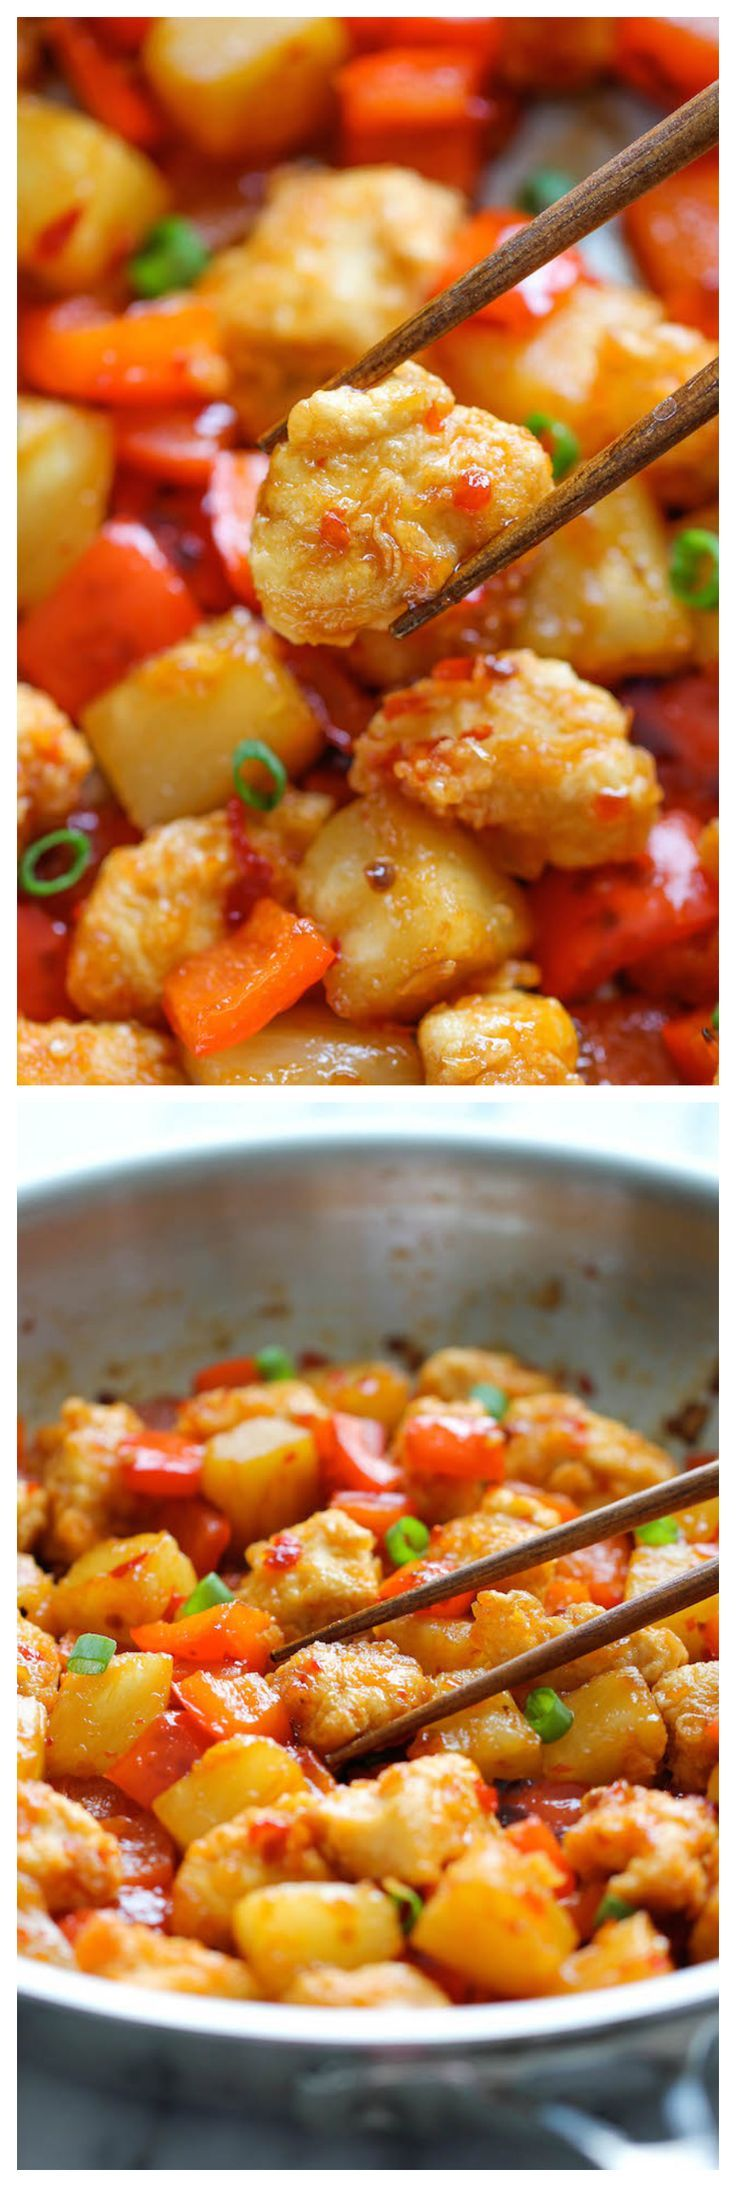 (3) Pin by miQQi Living on Food Glorious Food! | Pinterest